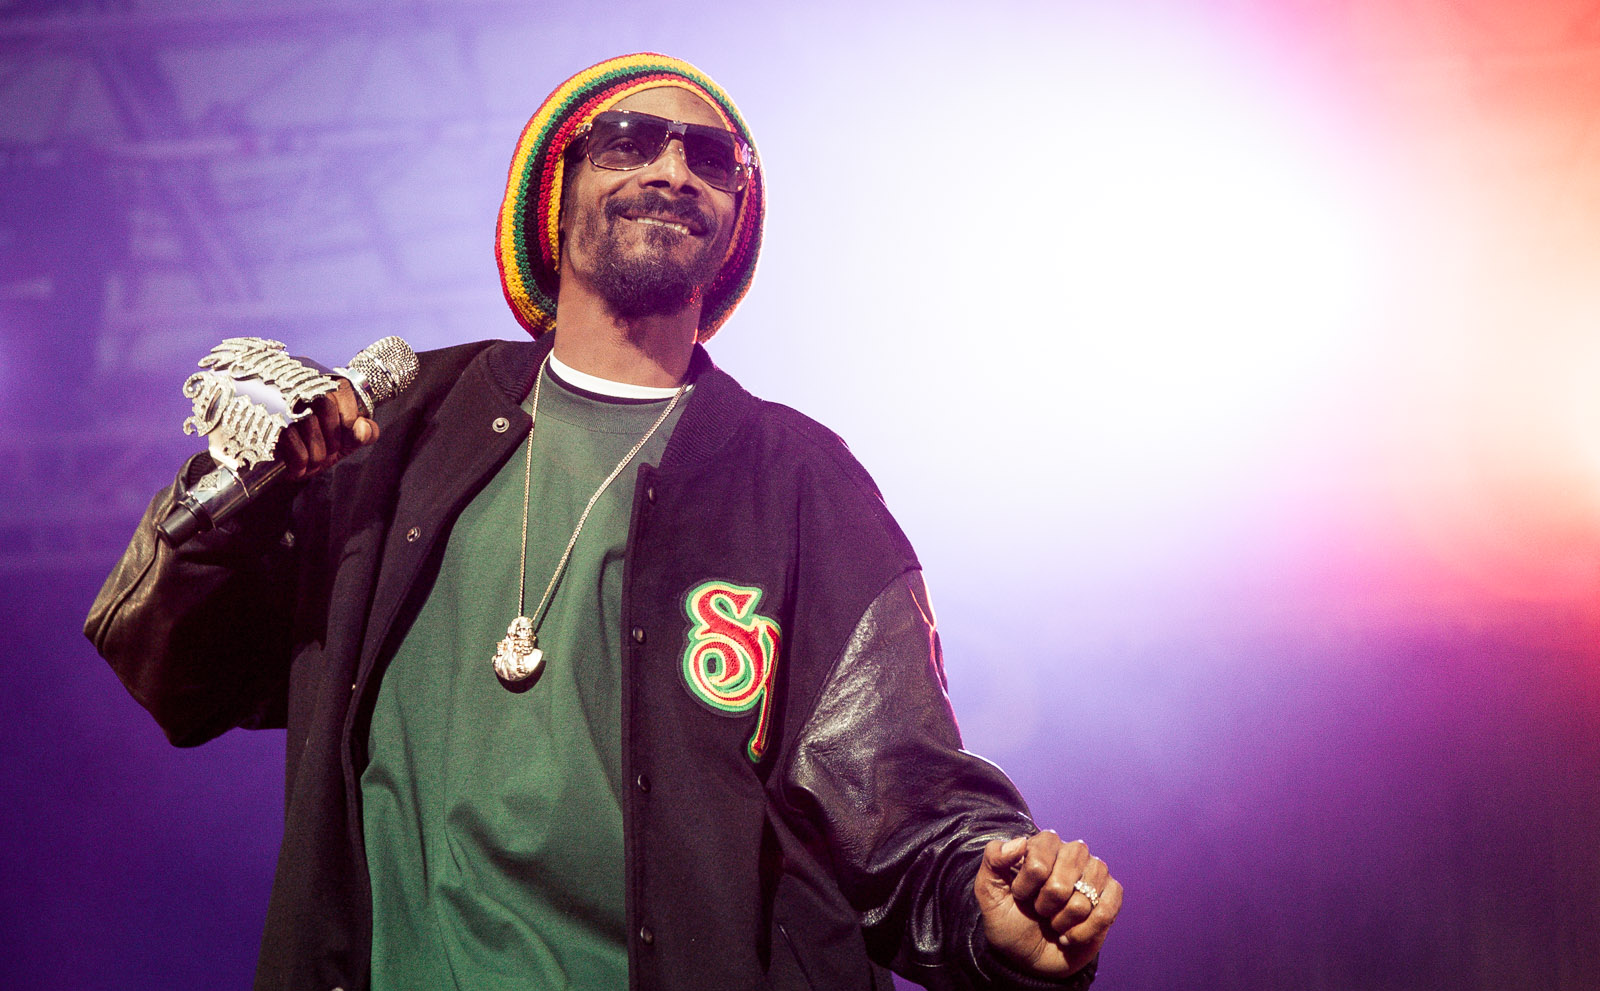 Celebrities_Snoop Dog